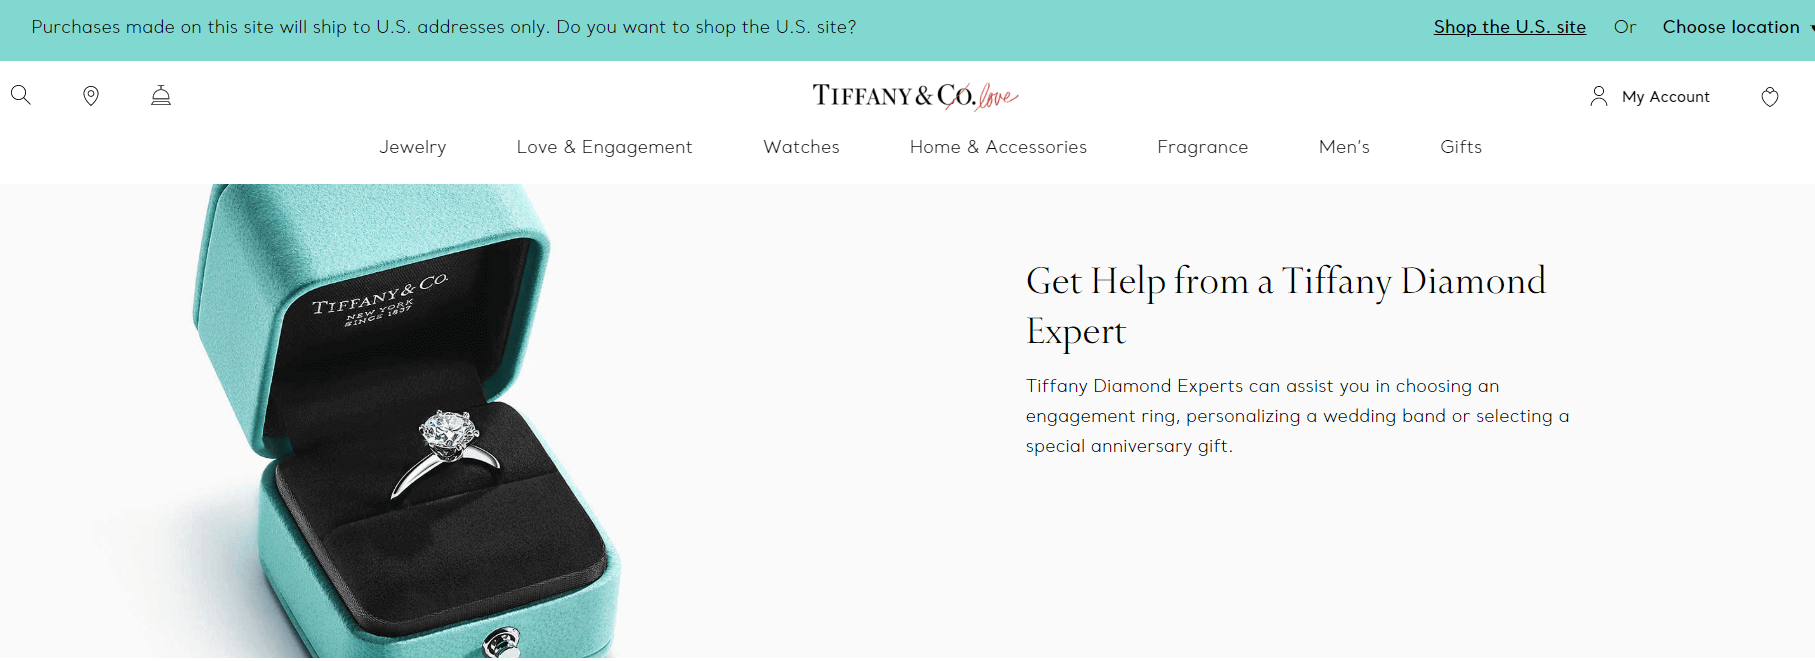 Tiffany website design call an expert